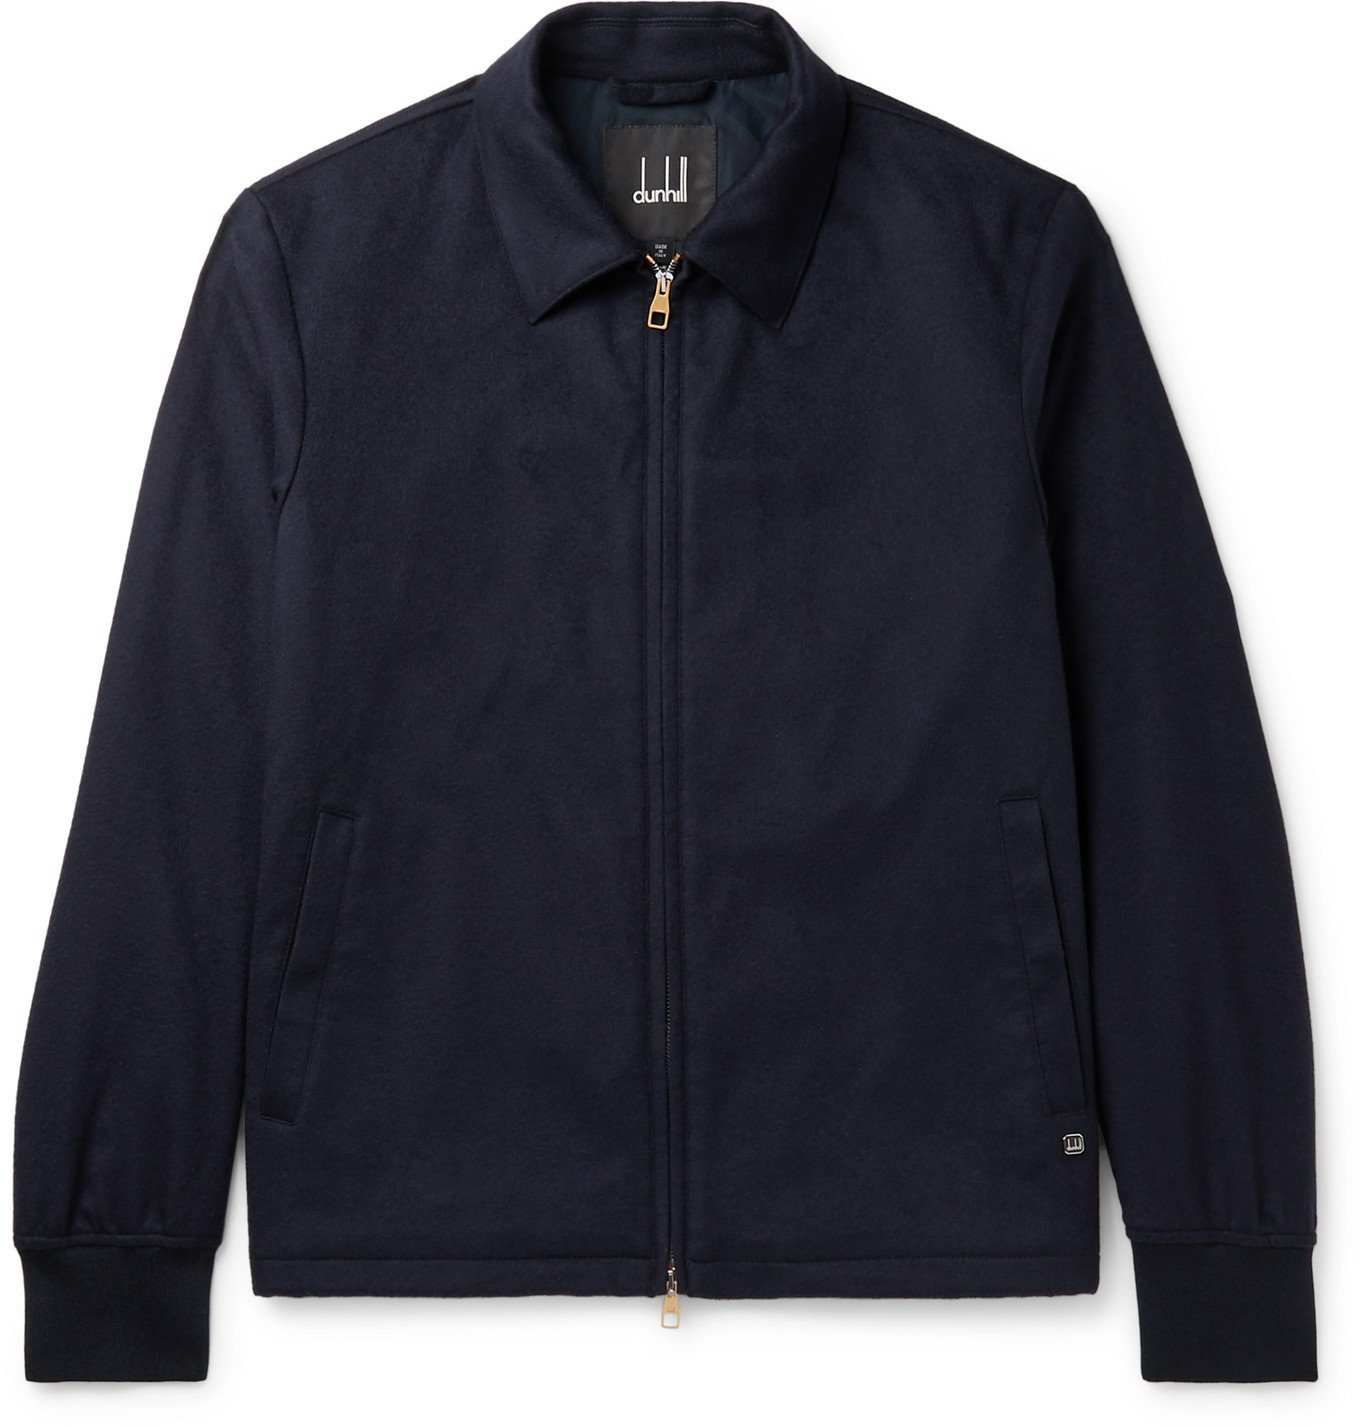 Dunhill - Wool and Cashmere-Blend Jacket - Blue